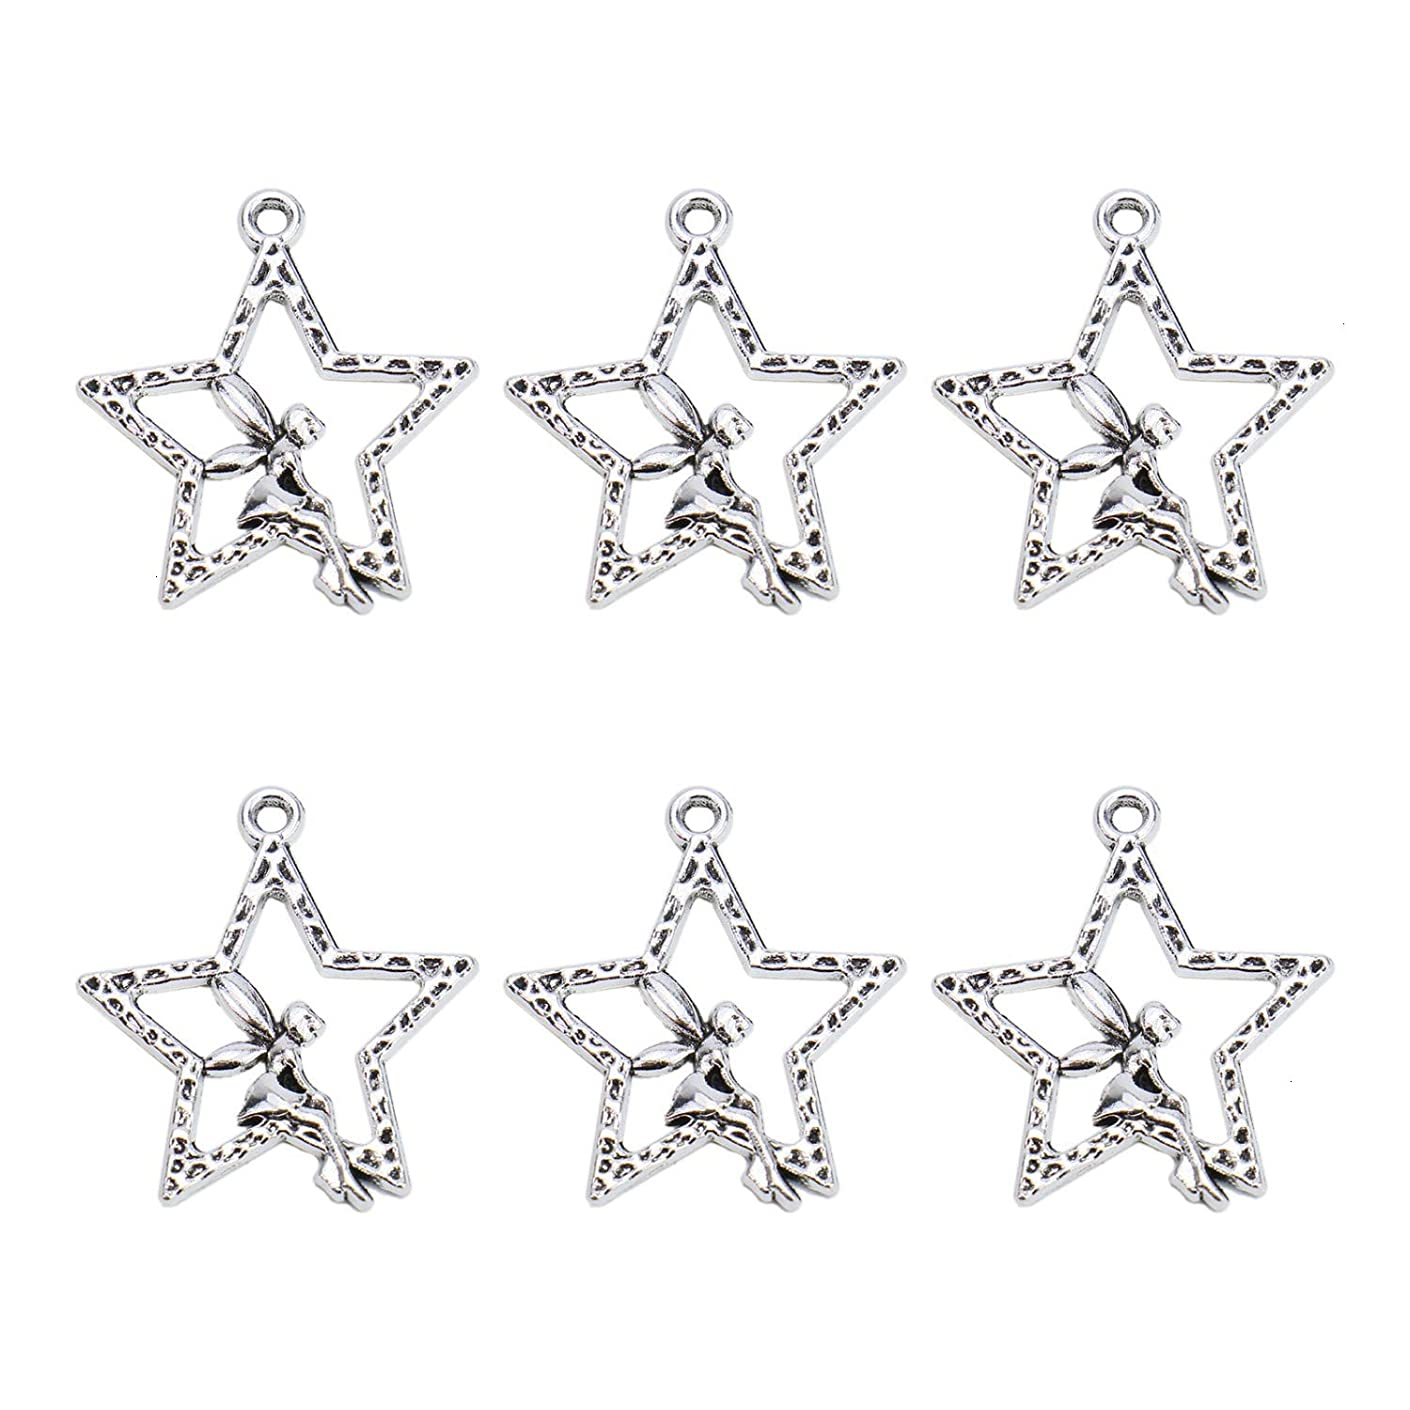 Monrocco 50pcs Antique Silver Charms Fairy Angel Star Tibetan Pendant Jewelry Findings Accessories for Jewelry Making Necklace Bracelet DIY (29x25mm)